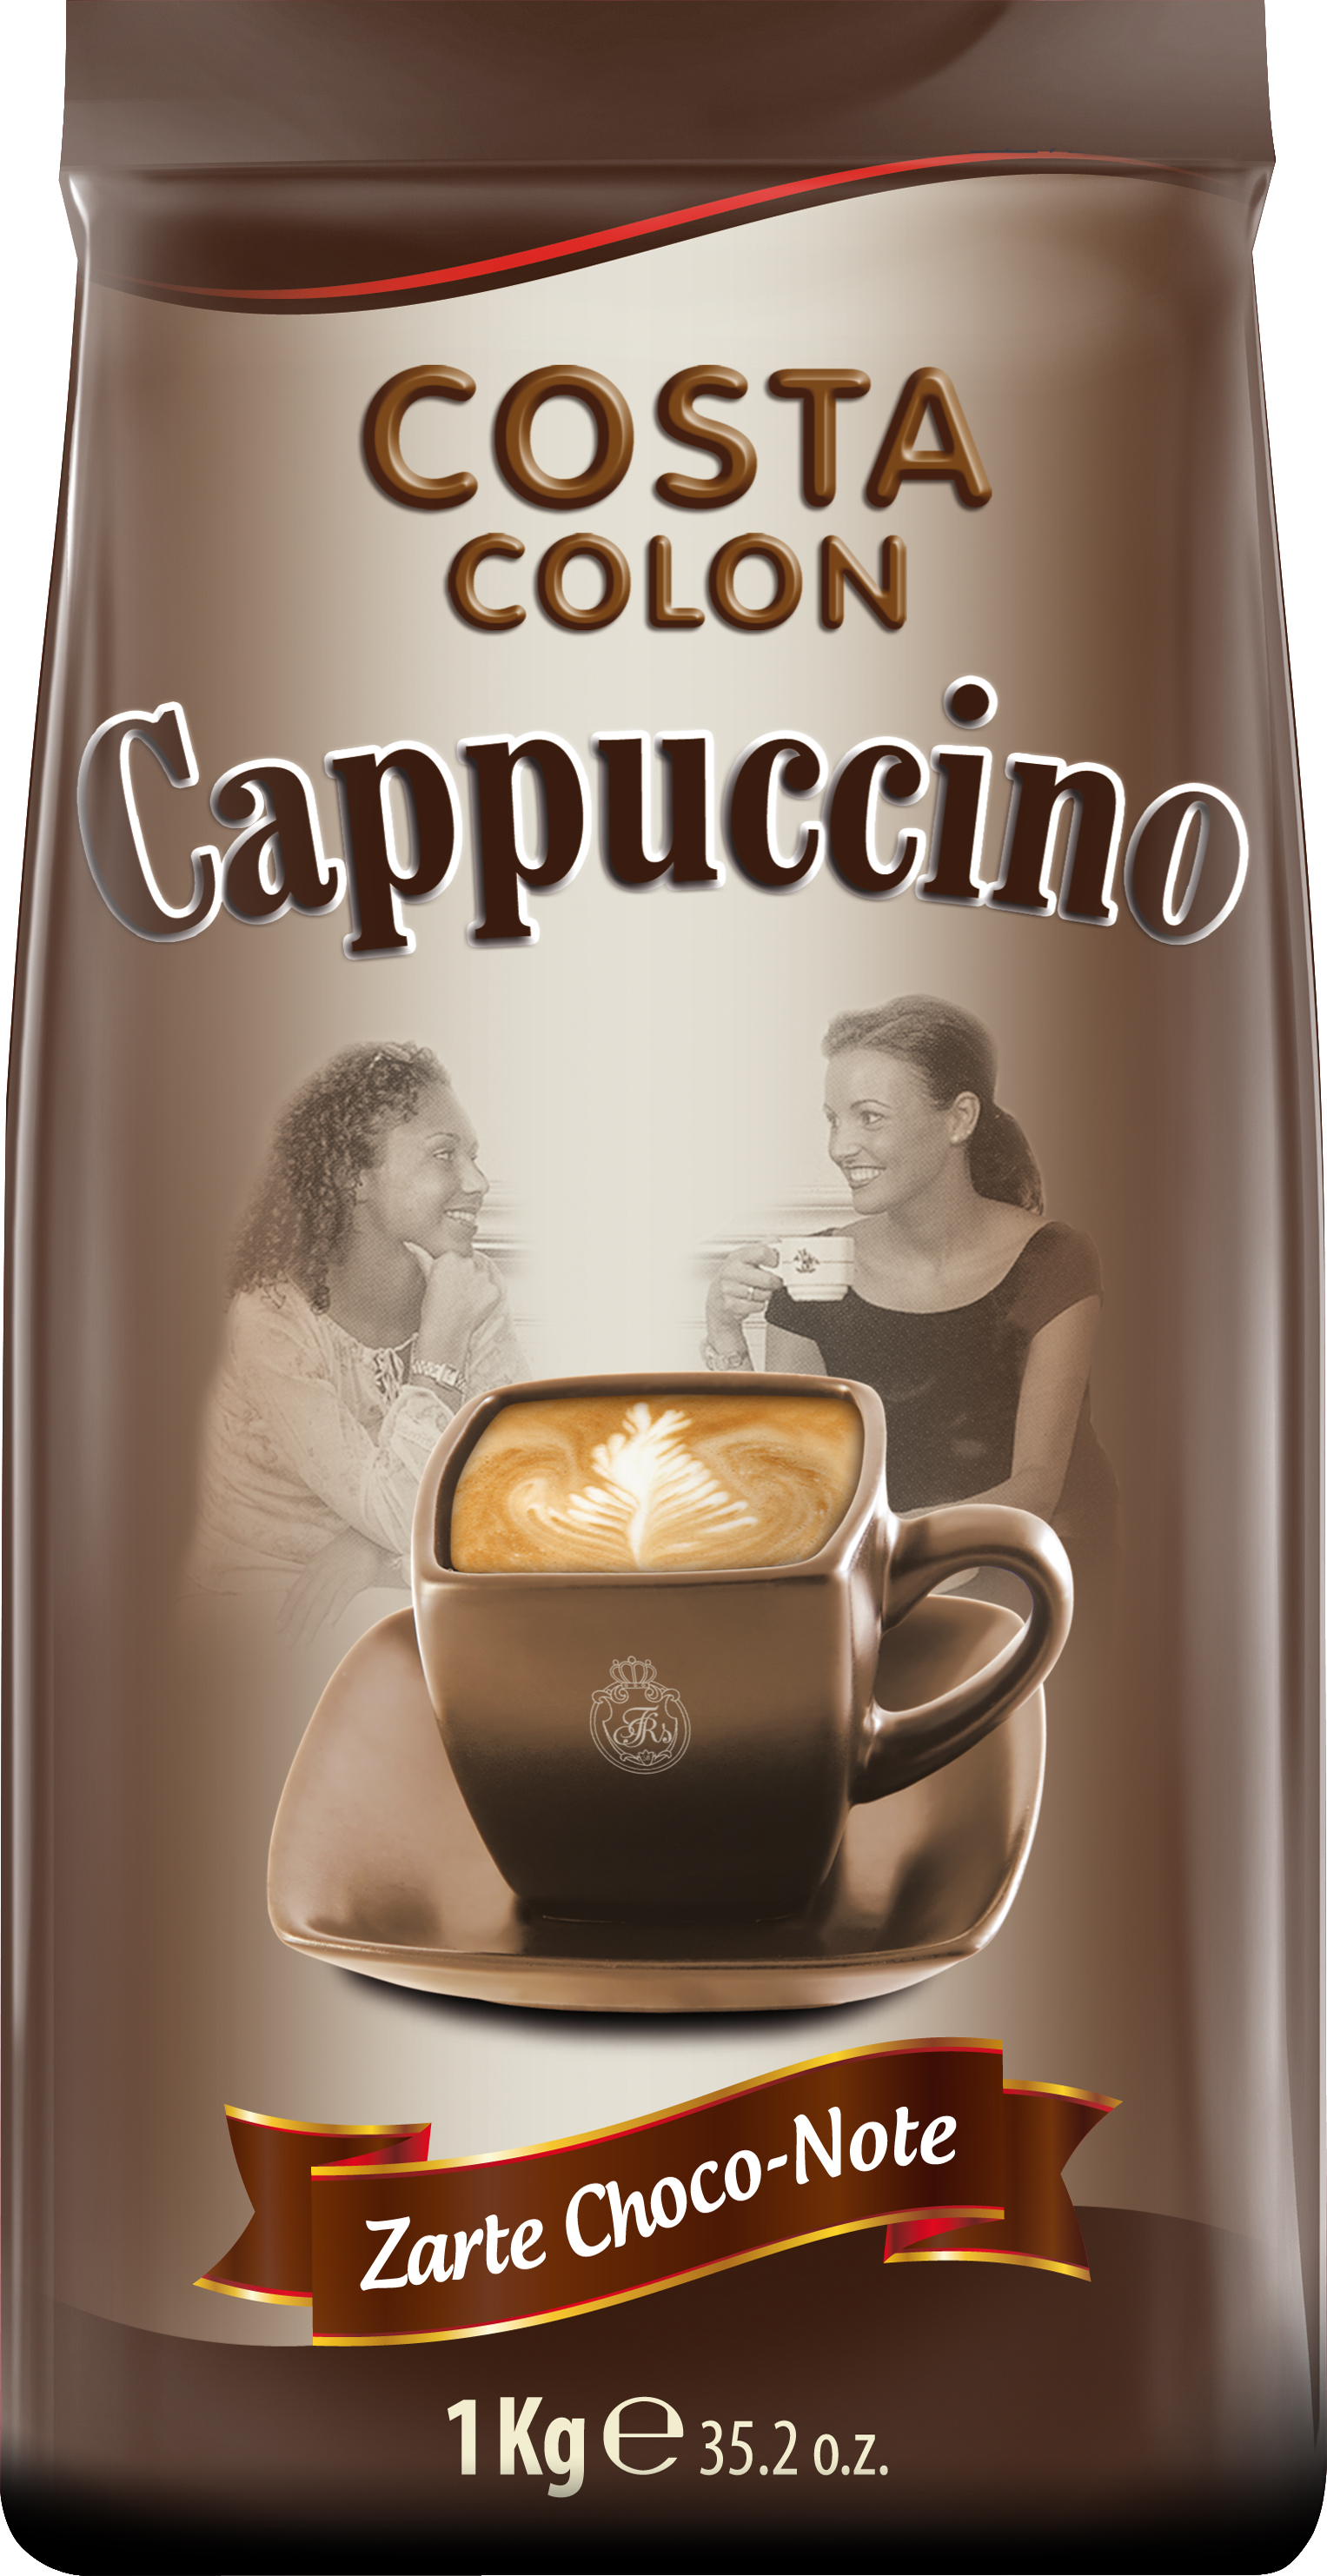 925N - Costa Colon Cappuccino 1Kg.jpg